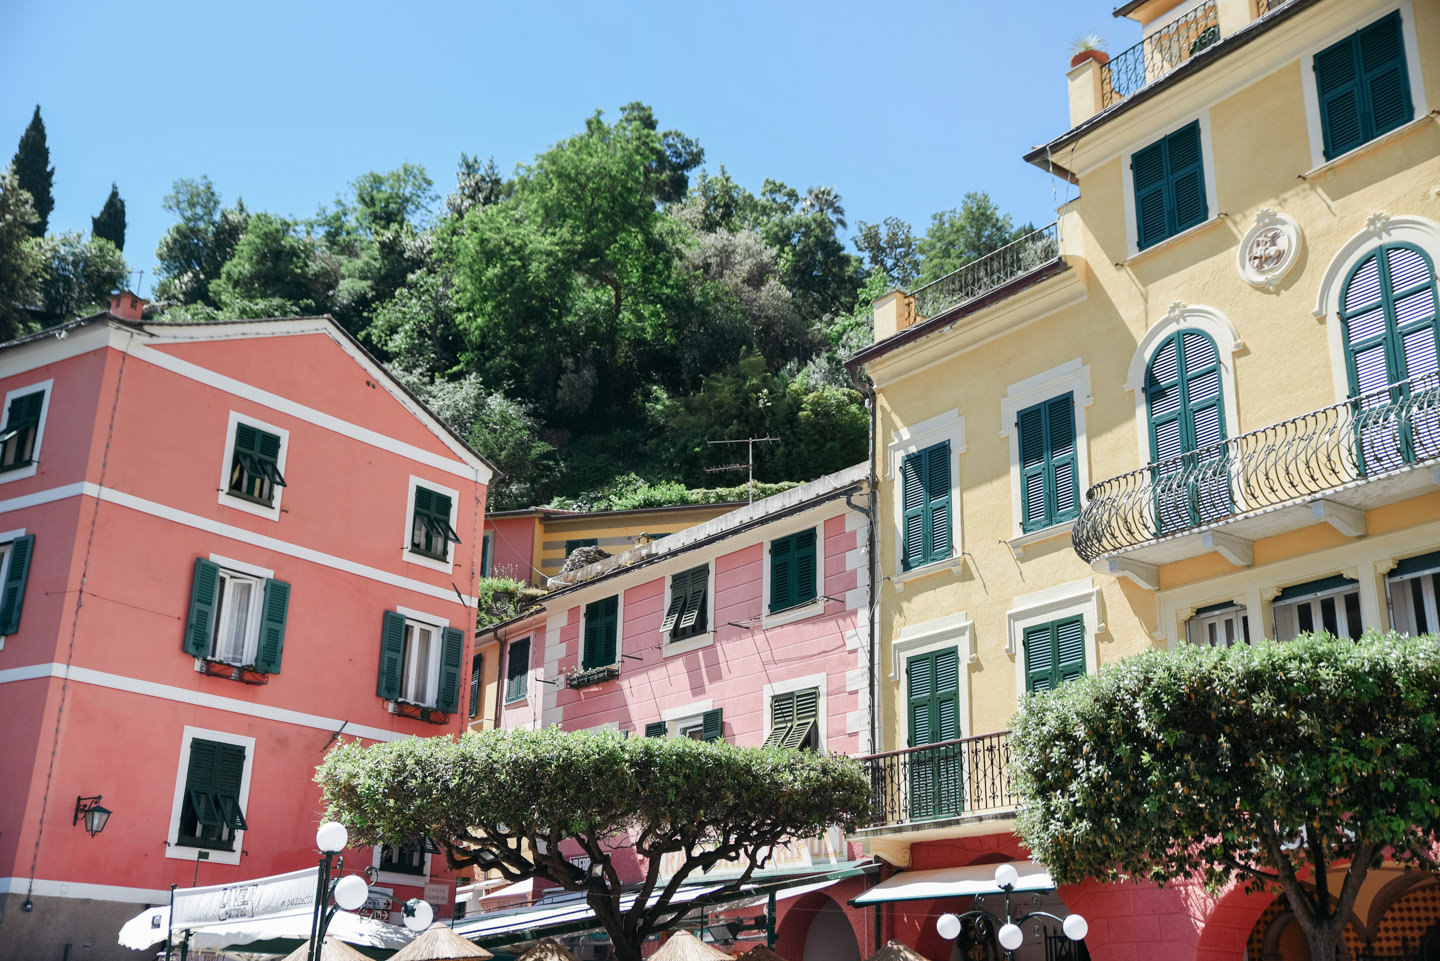 Blog-Mode-And-The-City-Lifestyle-Italie-Portofino-Belmond-Hotel-8